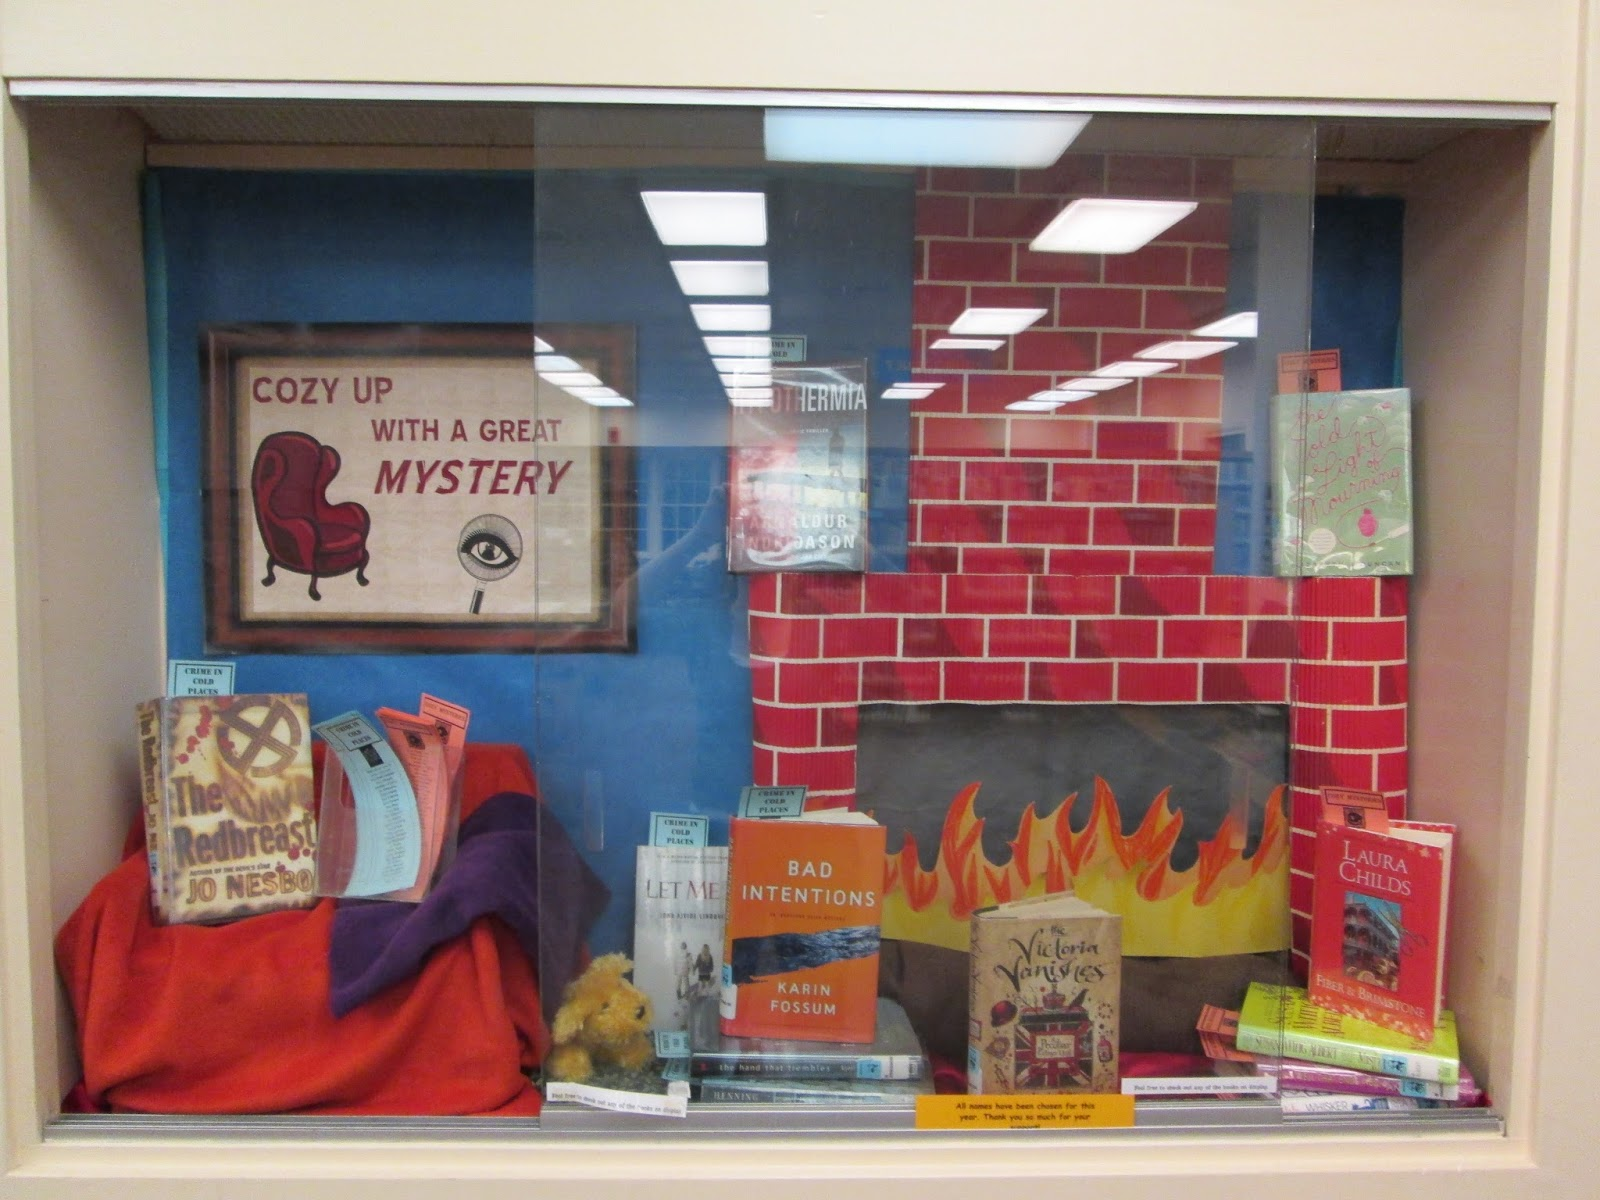 Digressions of a Sponge for Knowledge: Library Displays